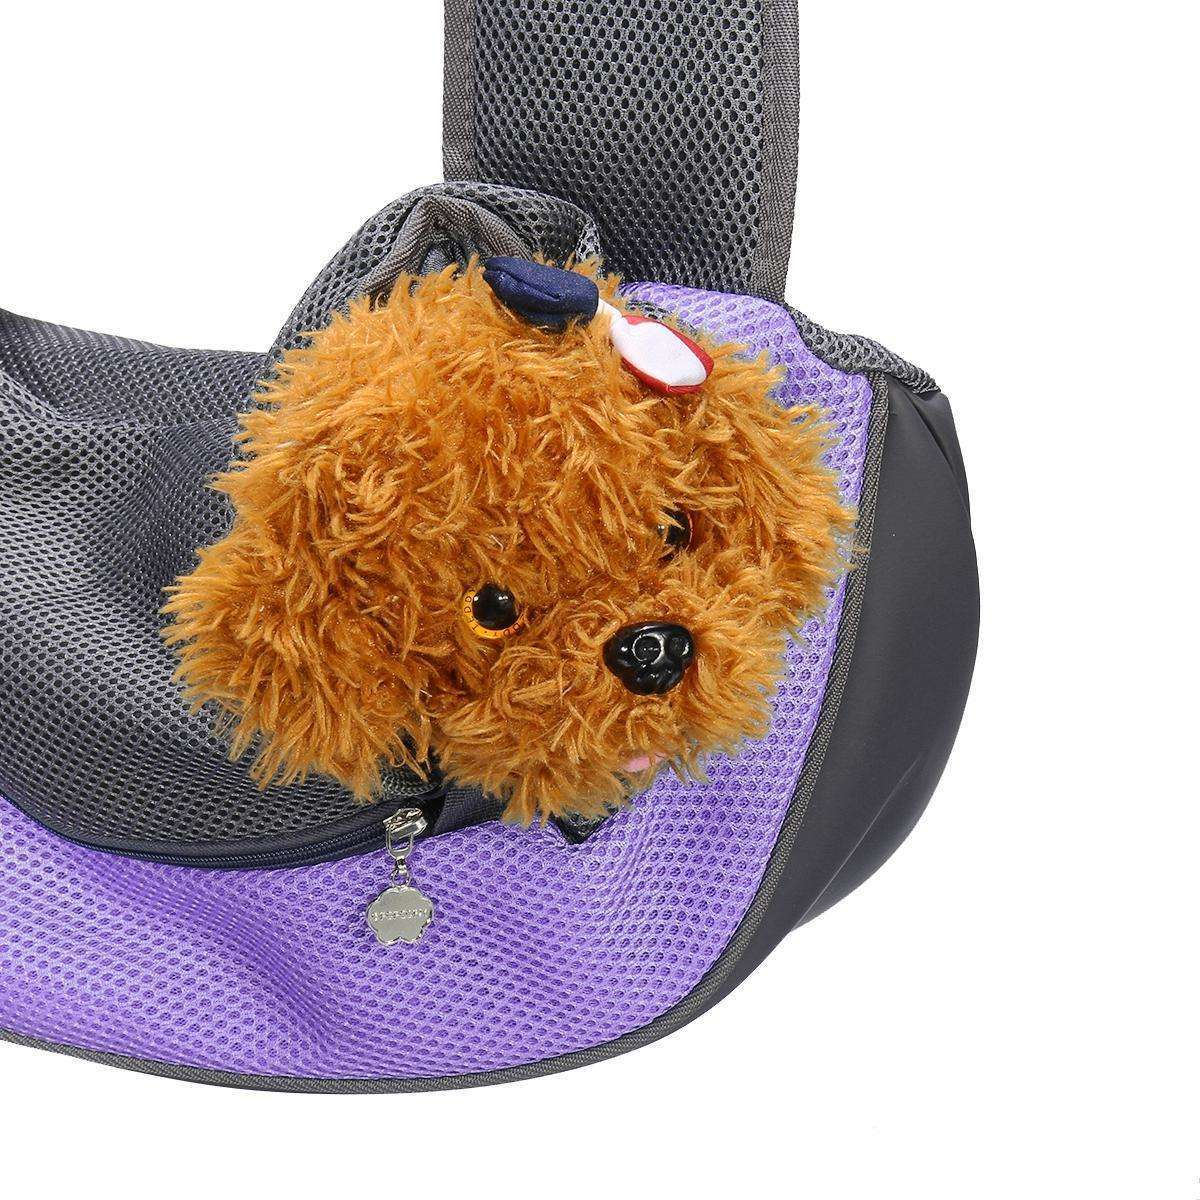 Dog Puppy Cat Portable Breathable Hiking Travel Pet Carrier Bag-Pet Carrier Bag